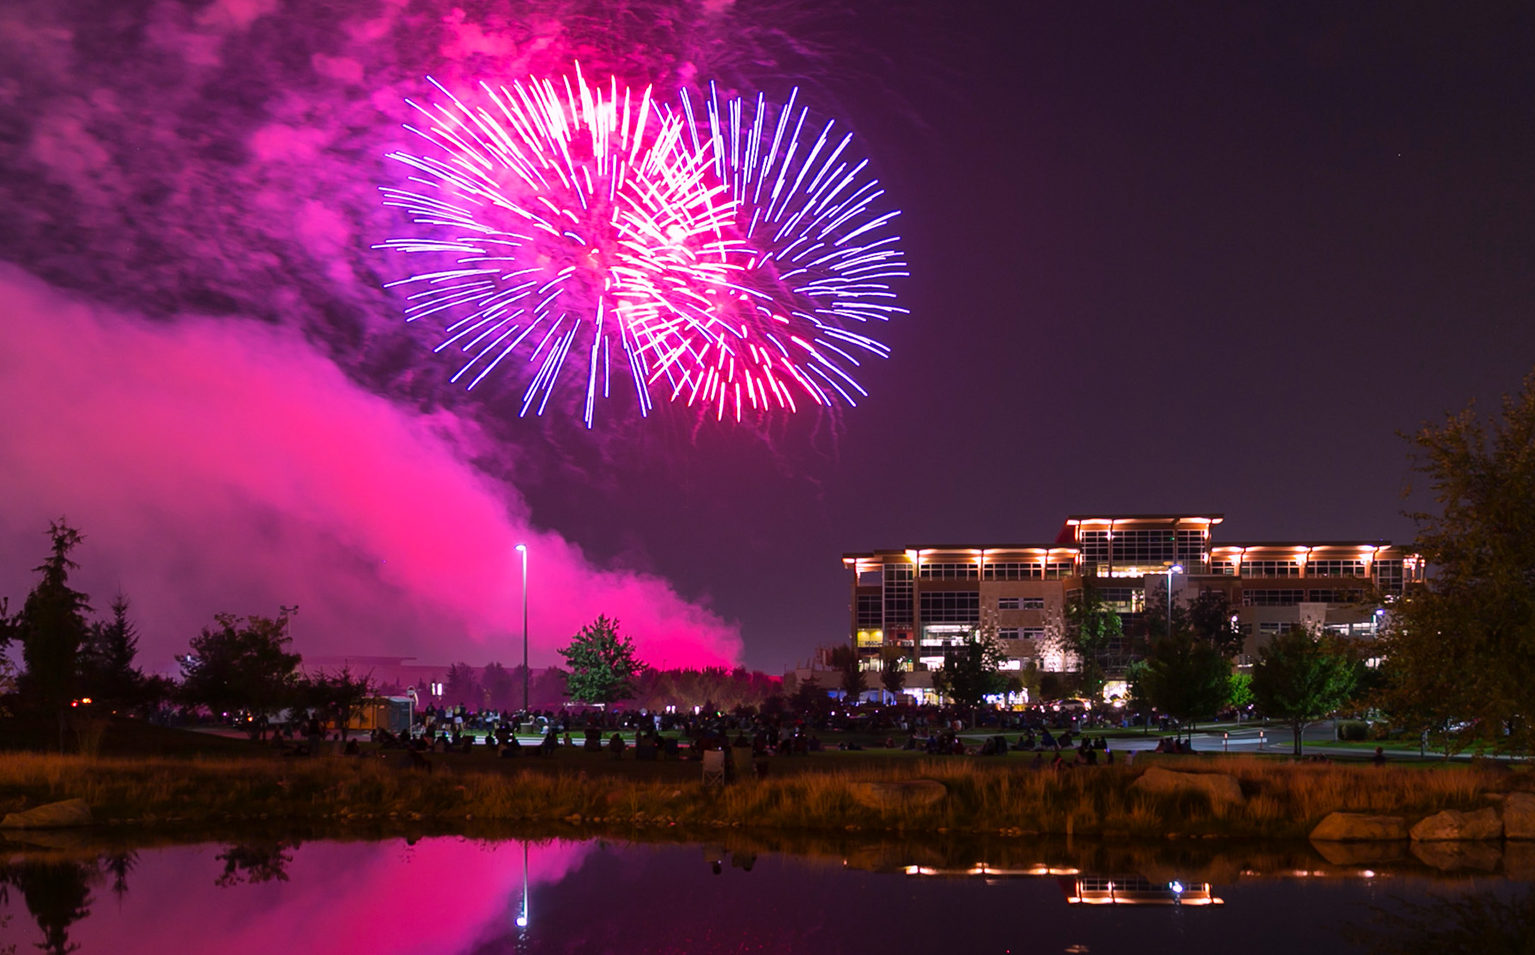 Beautiful fireworks exploding over the main Scentsy tower